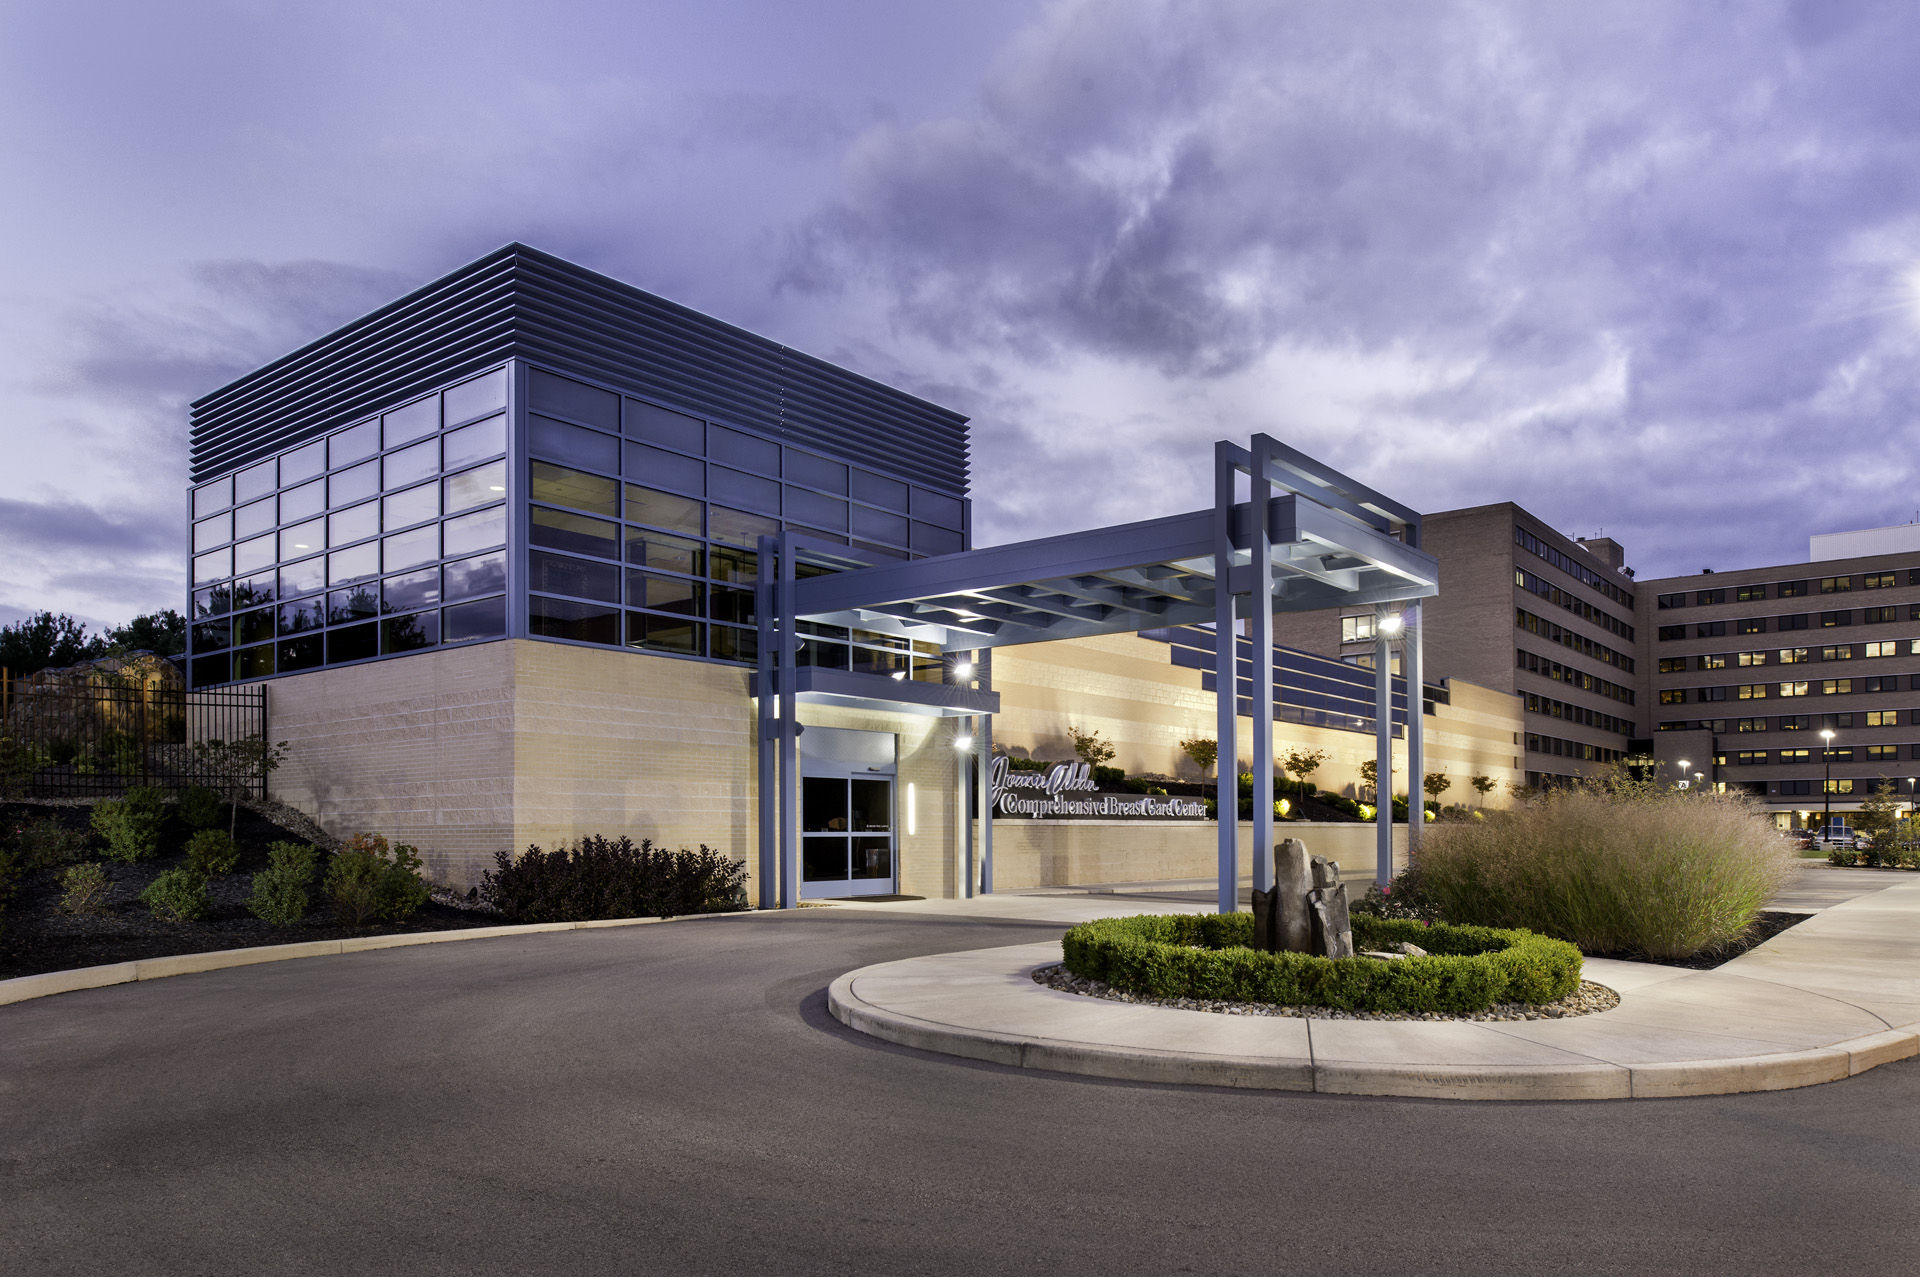 joanie abdu comprehensive breast care center - YOUNGSTOWN, OH